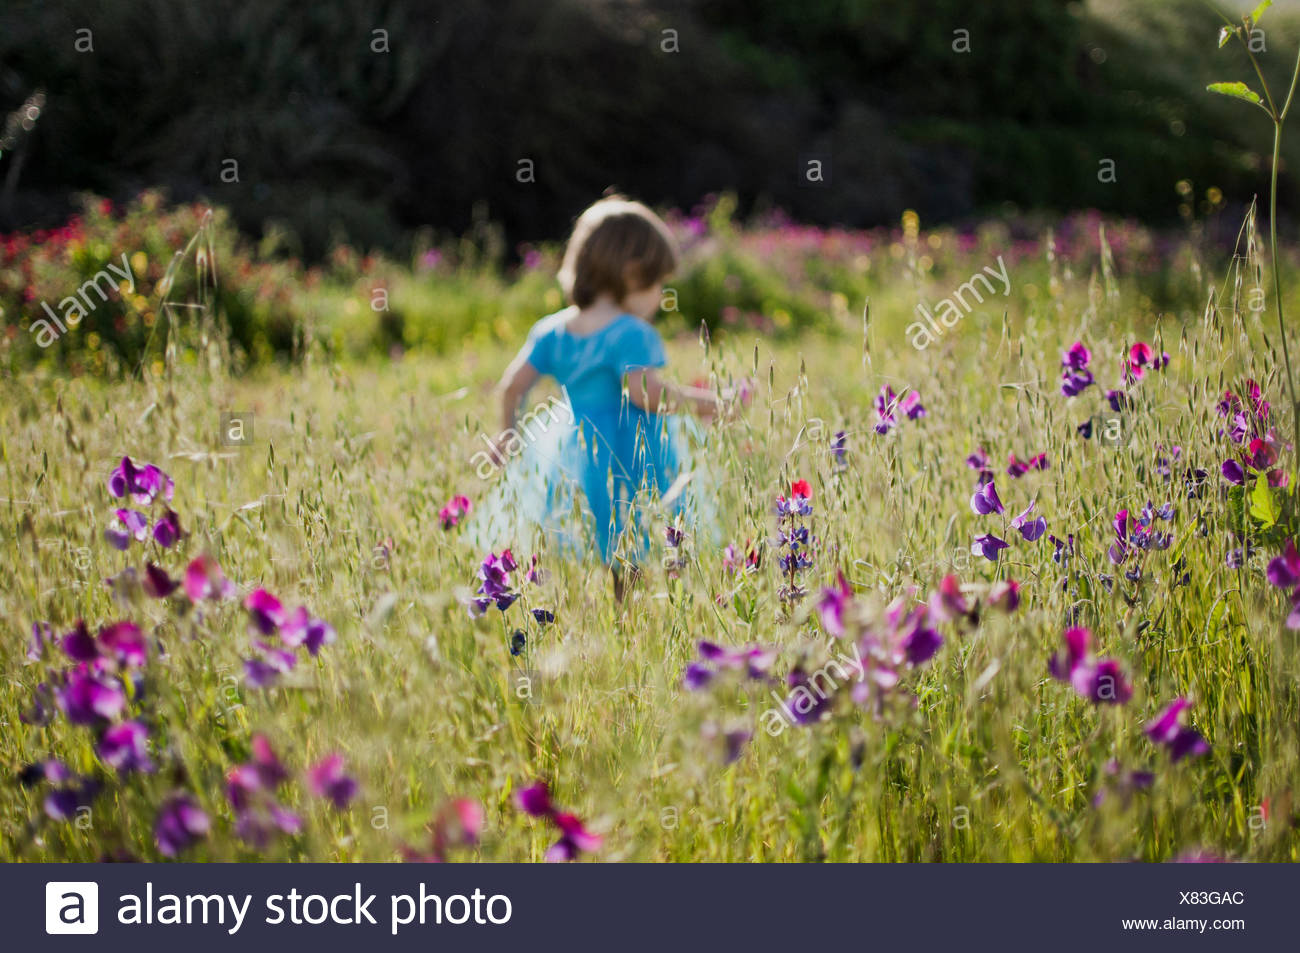 little girl running in a field of flowers - Stock Image